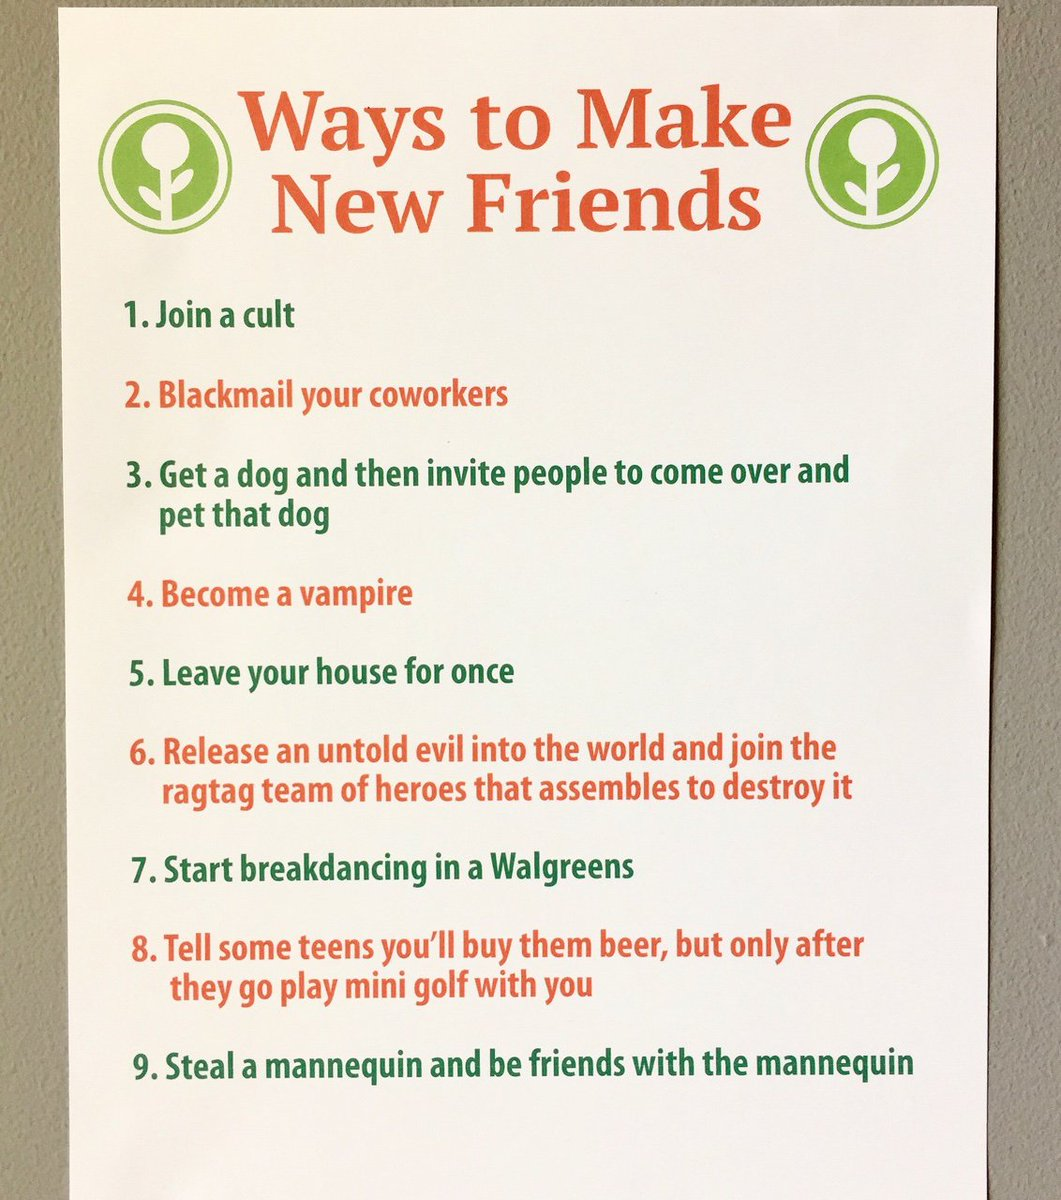 Get to know new friends